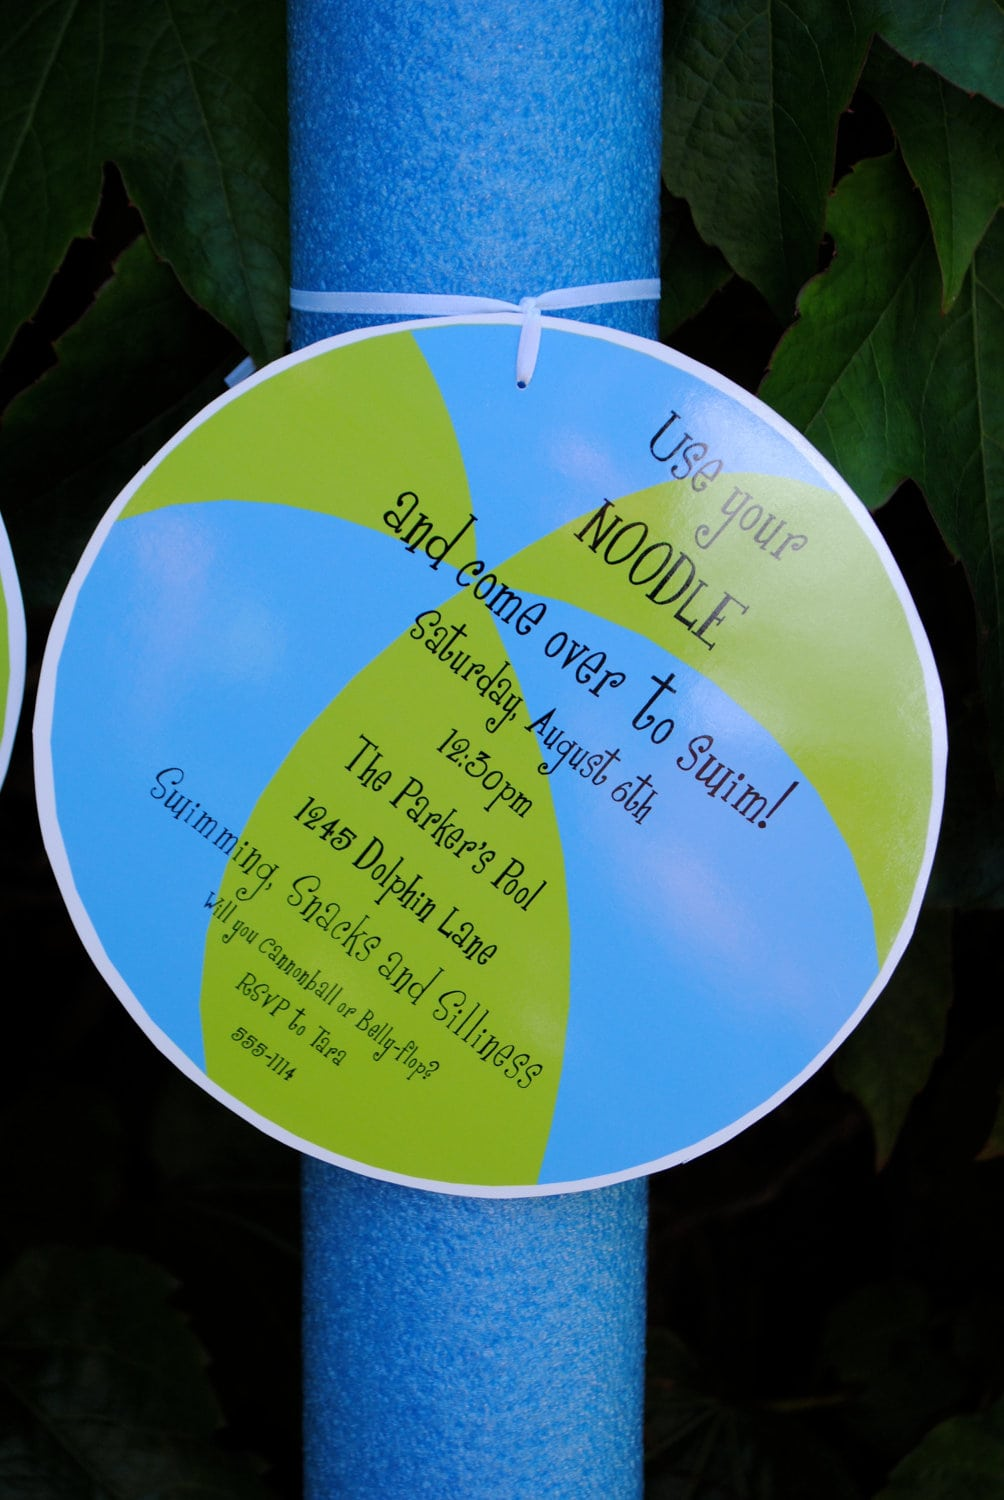 Beach Ball Swim Party Invitations To Be Attached By Jacolynmurphy